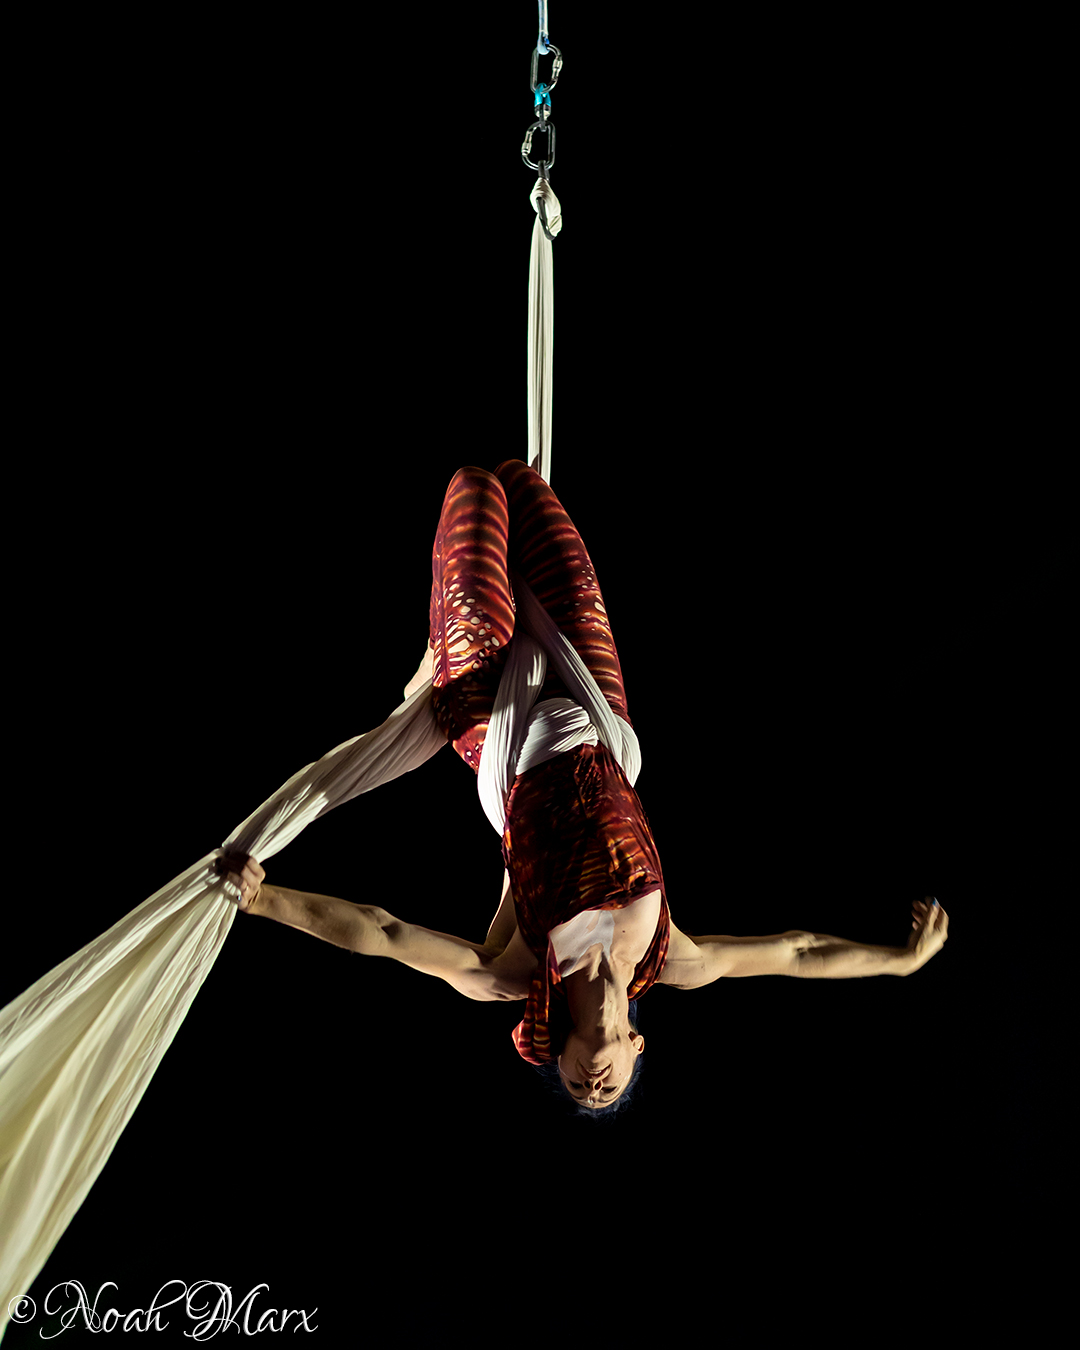 Dana performing on silks